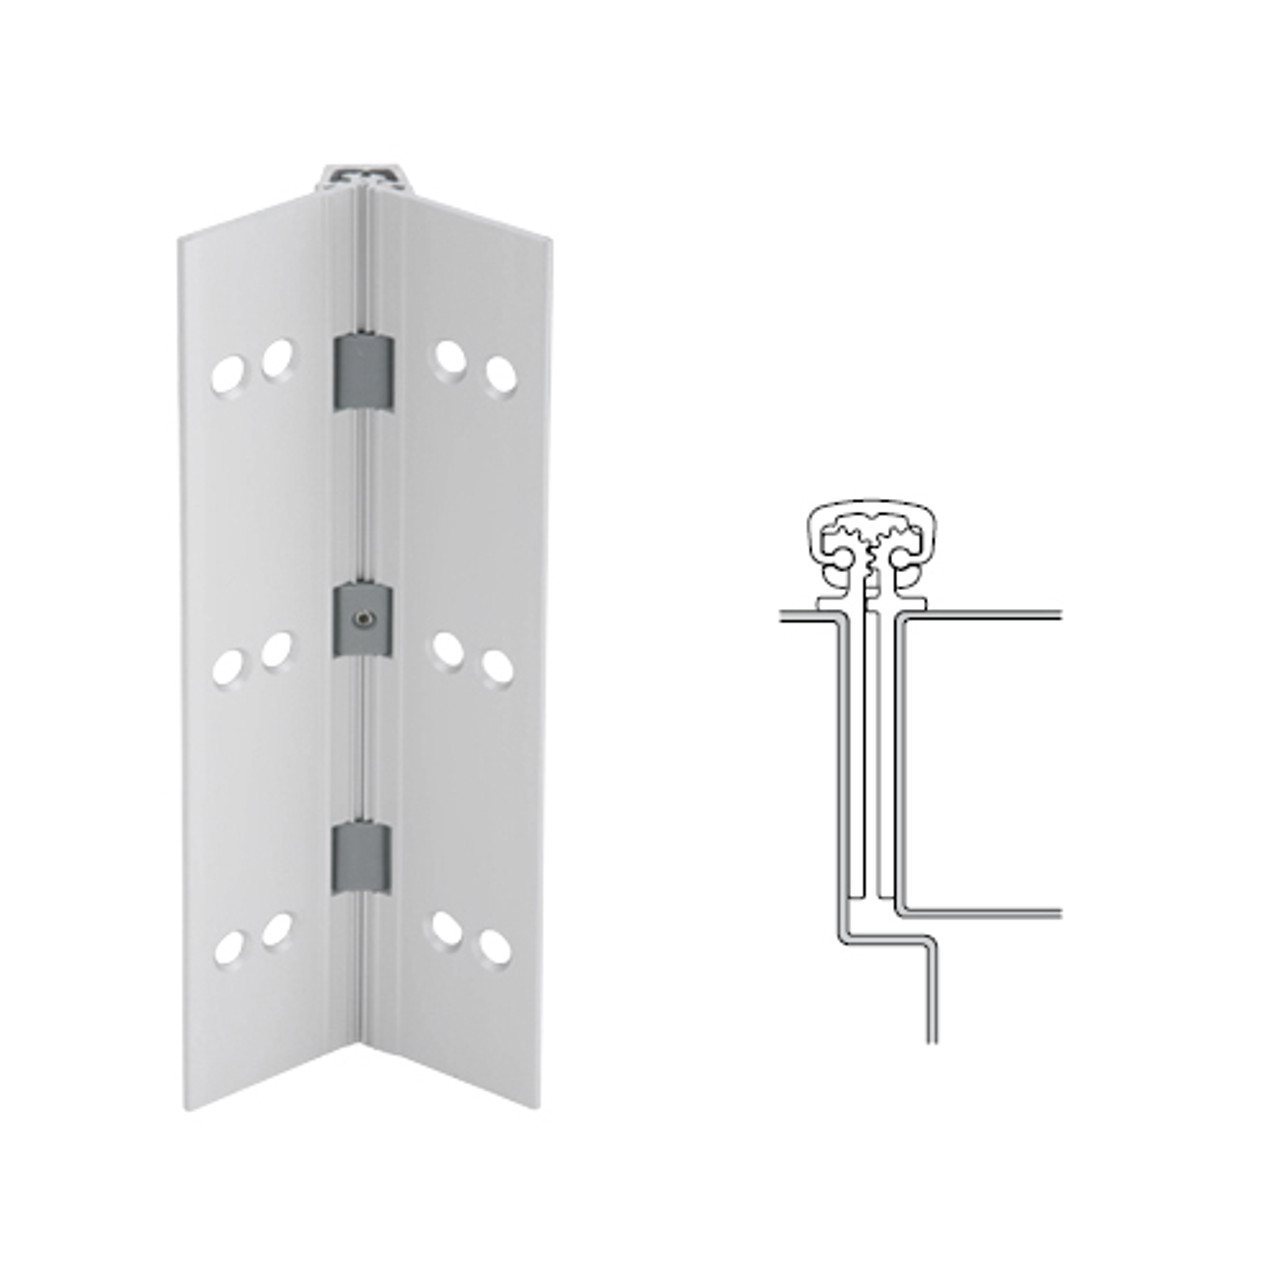 027XY-US28-83-TFWD IVES Full Mortise Continuous Geared Hinges with Thread Forming Screws in Satin Aluminum